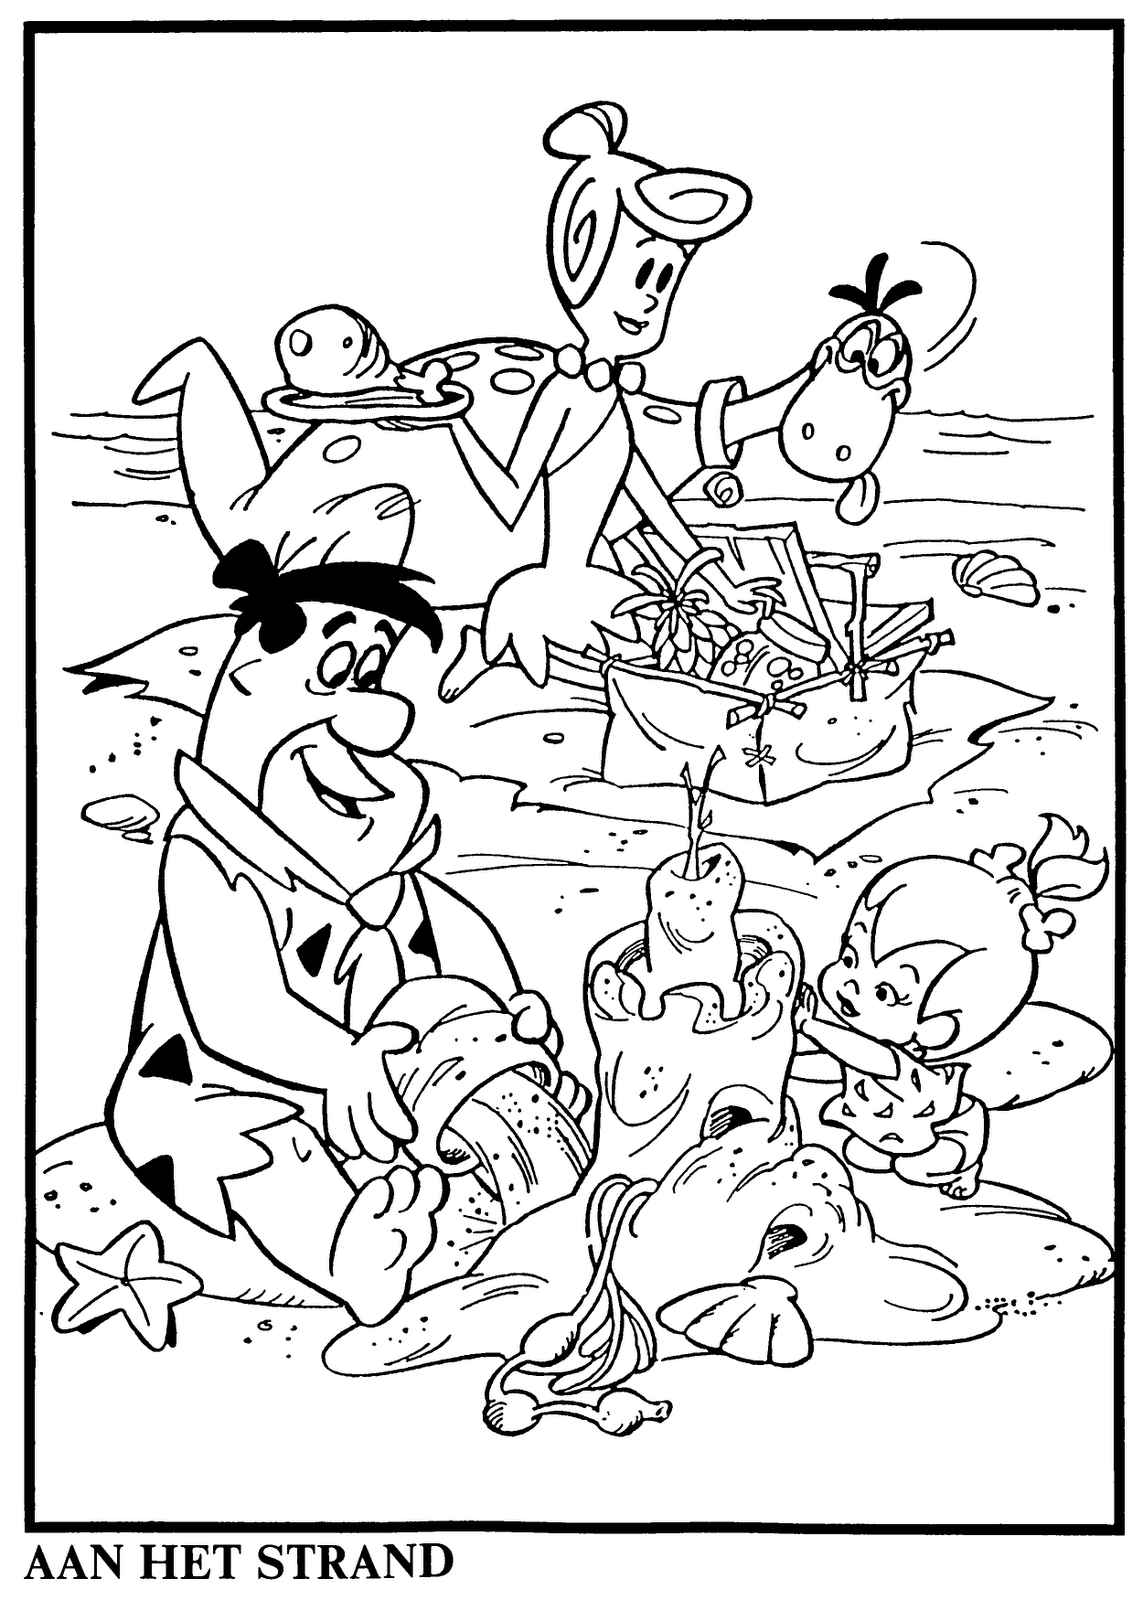 hanna barbera coloring pages - photo#34